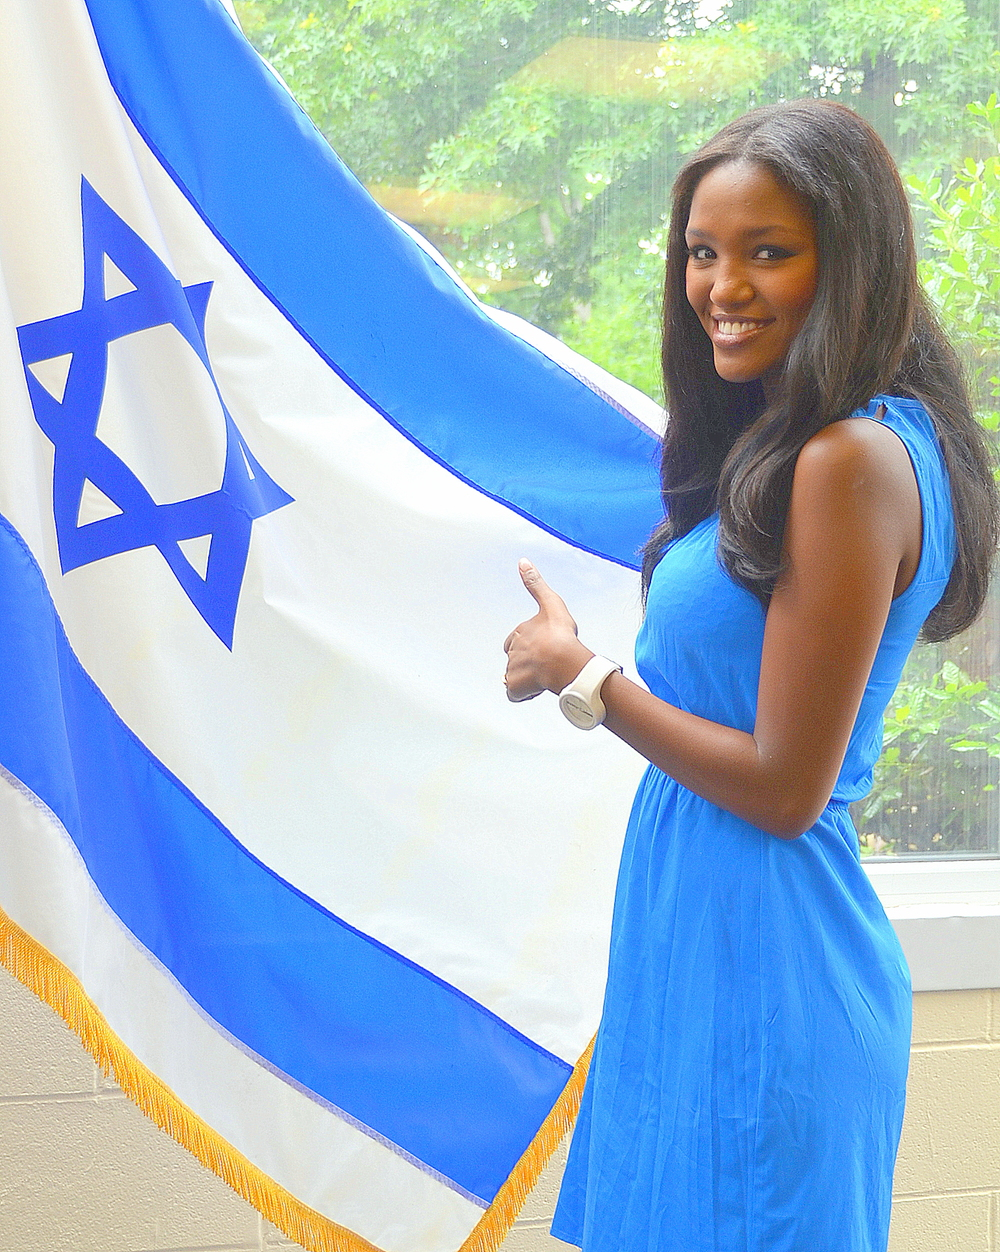 Click photo to download. Caption: Yitayish Ayenew, the first black Miss Israel and also the first woman of Ethiopian heritage to win the crown, poses with the Israeli flag at Solomon Schechter Day School of Bergan County, NJ, on June 14. Credit: Maxine Dovere.